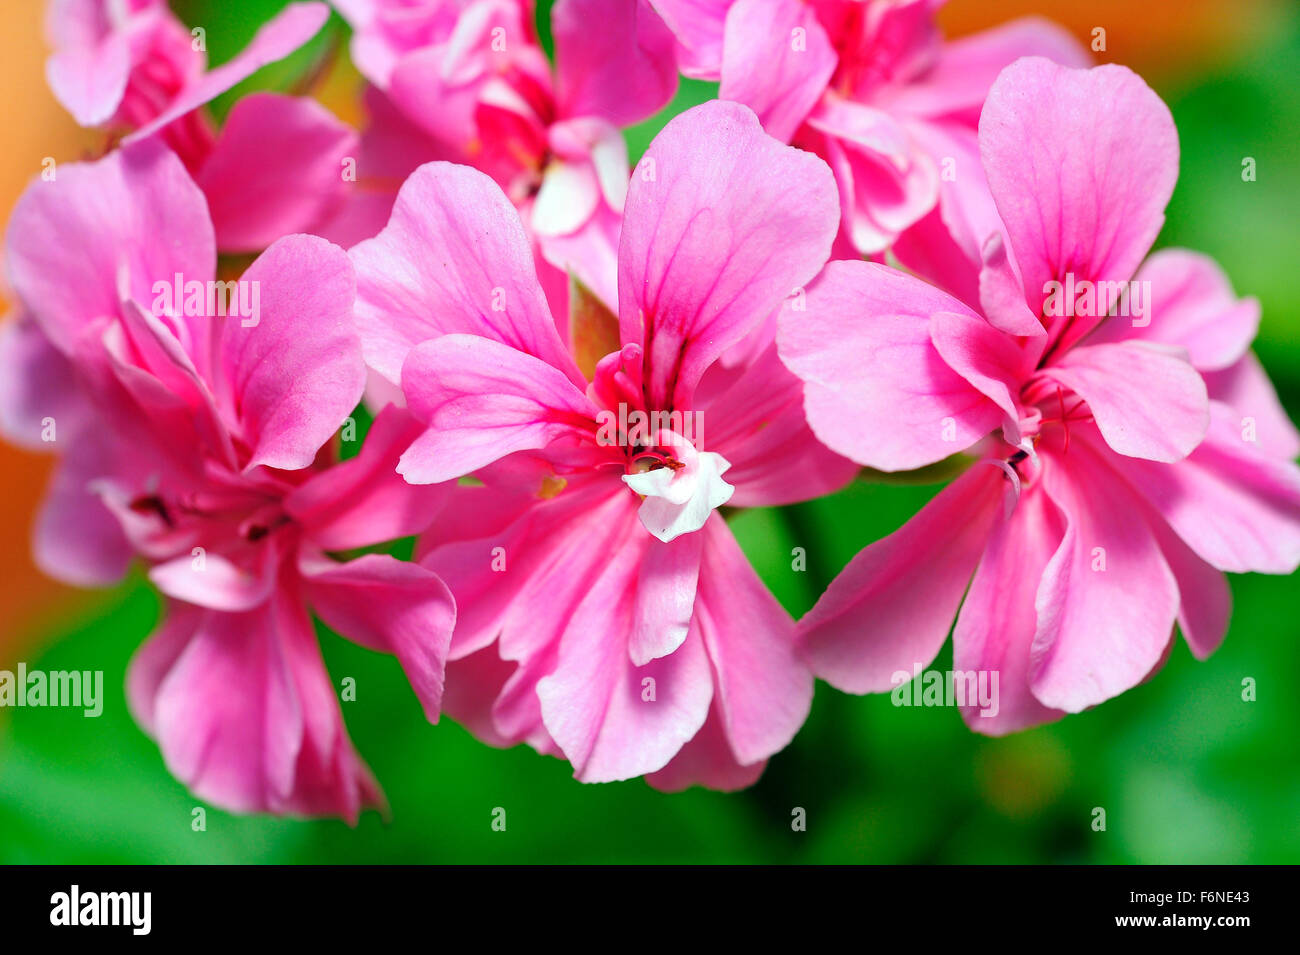 Pelargonium x hortorum, himachal pradesh, india, asia - Stock Image